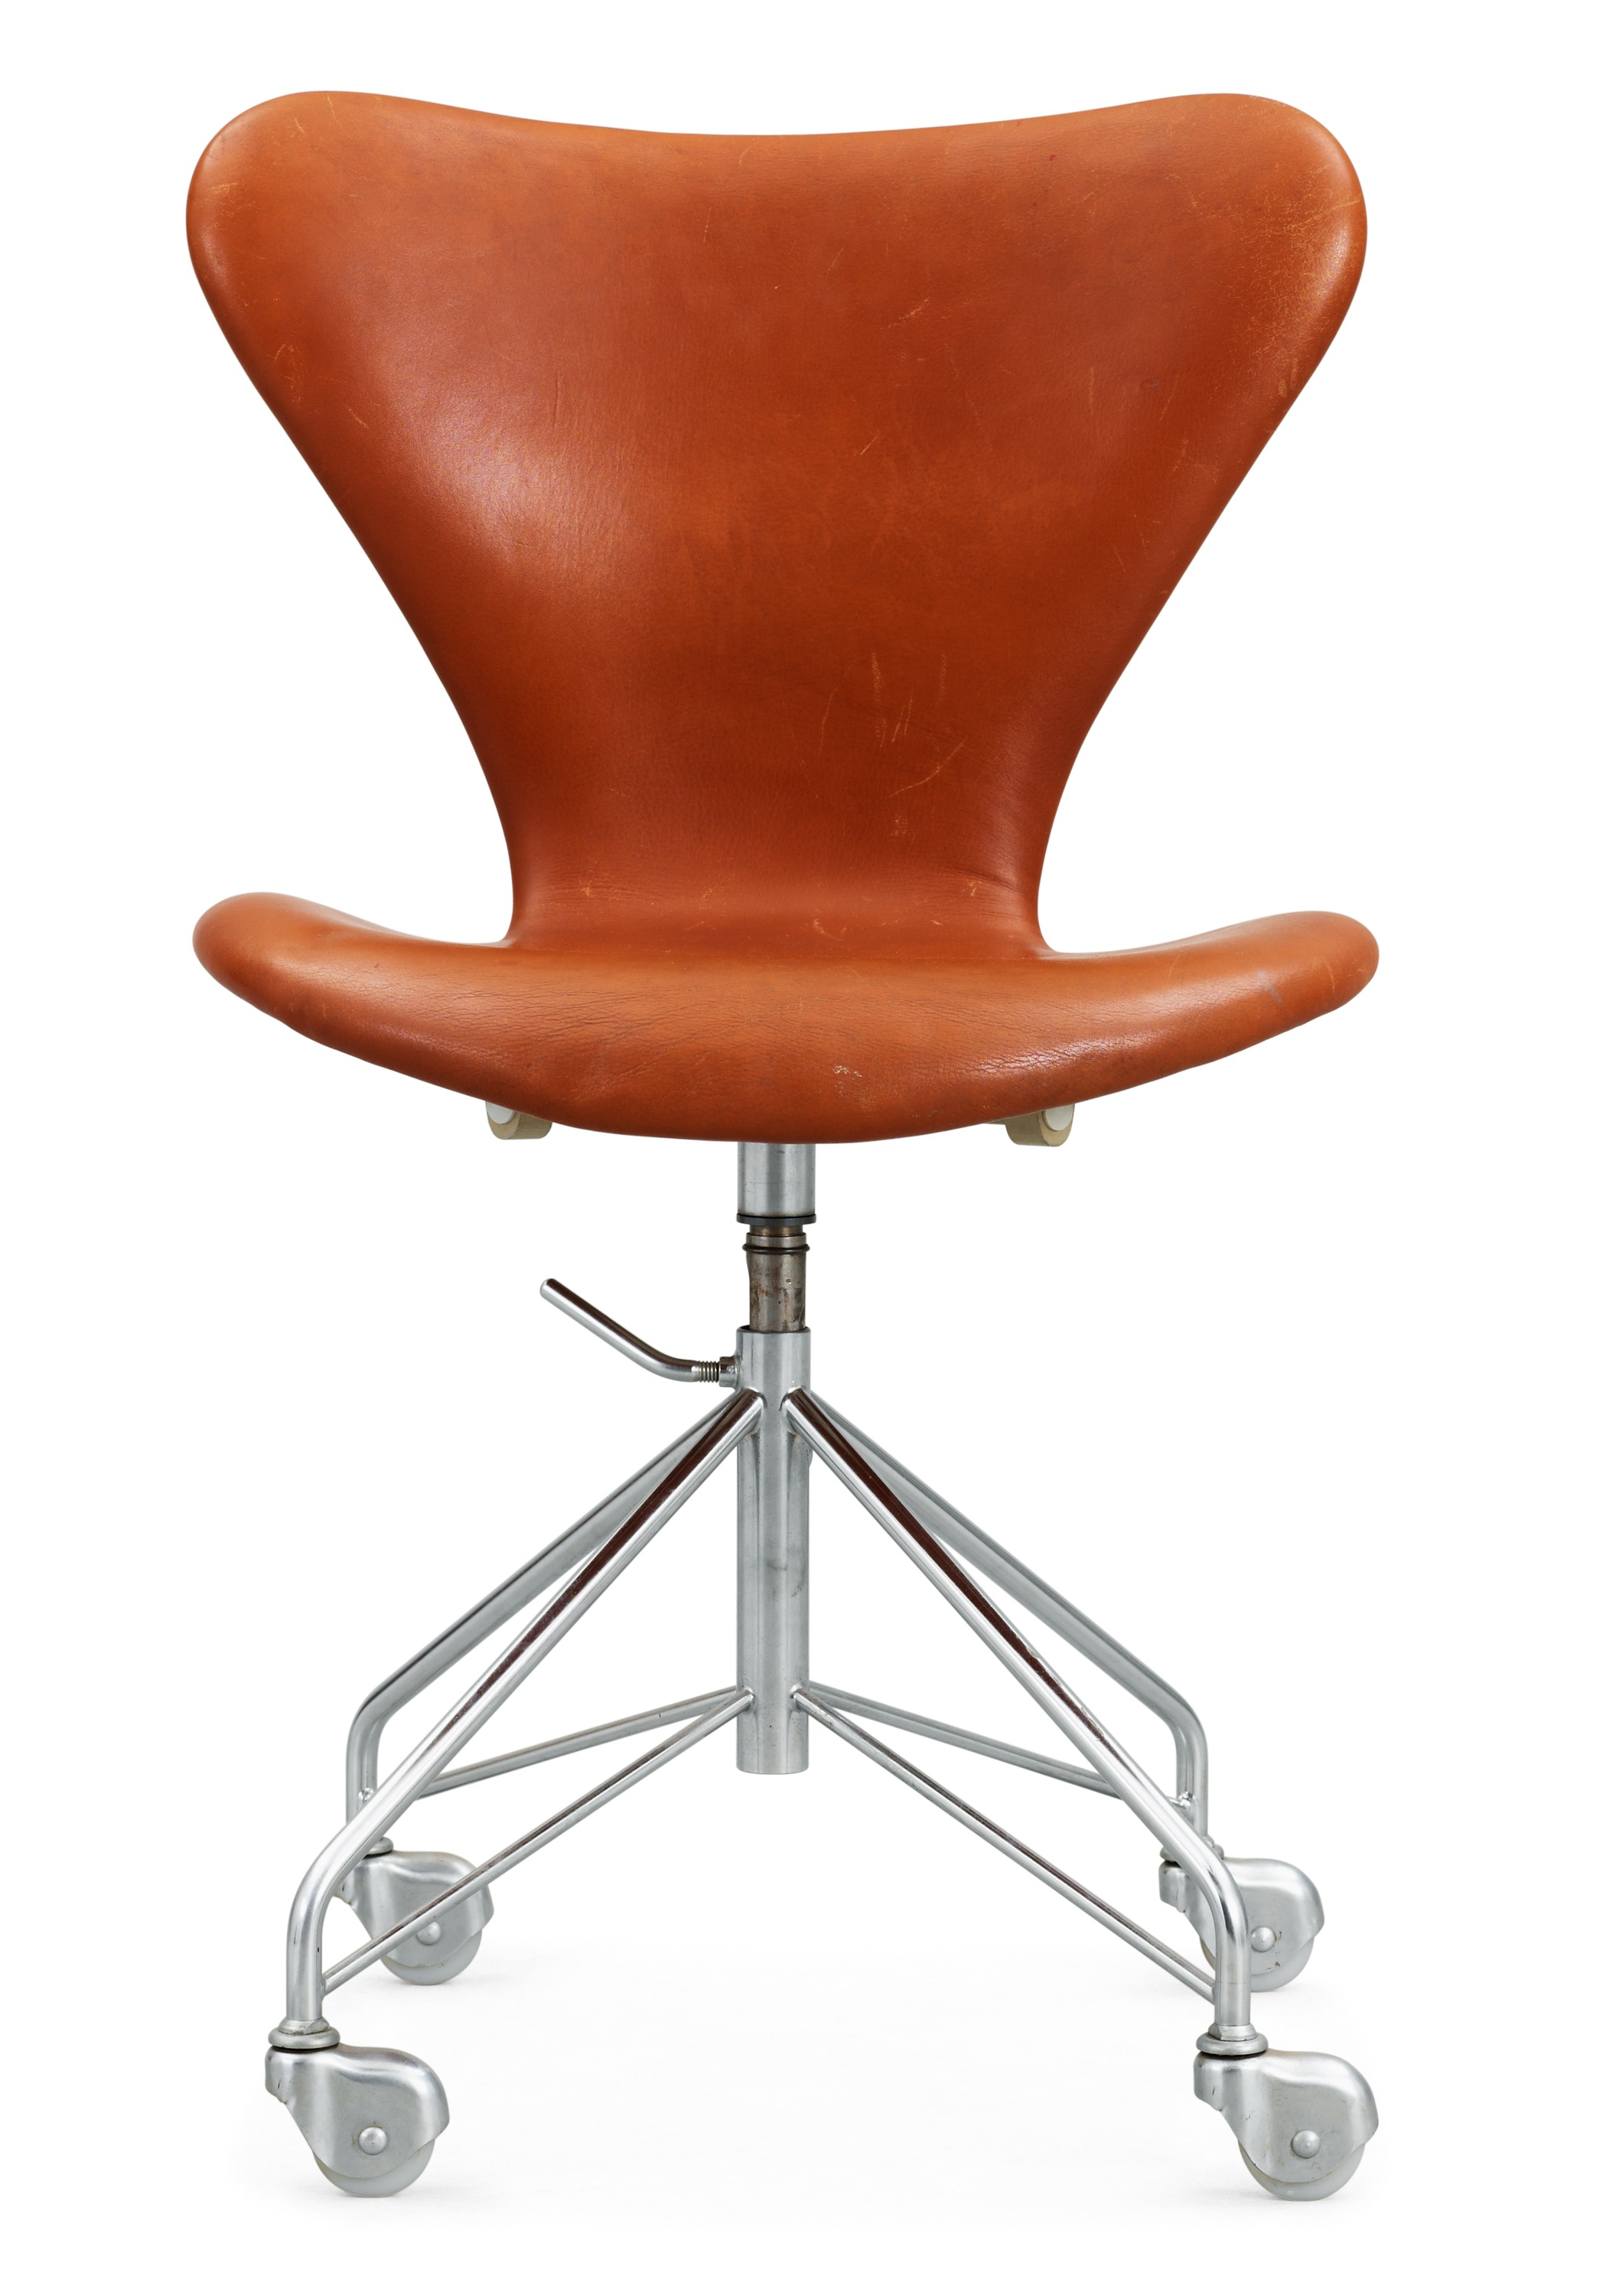 An Arne Jacobsen Series 7 Desk Chair By Fritz Hansen Denmark